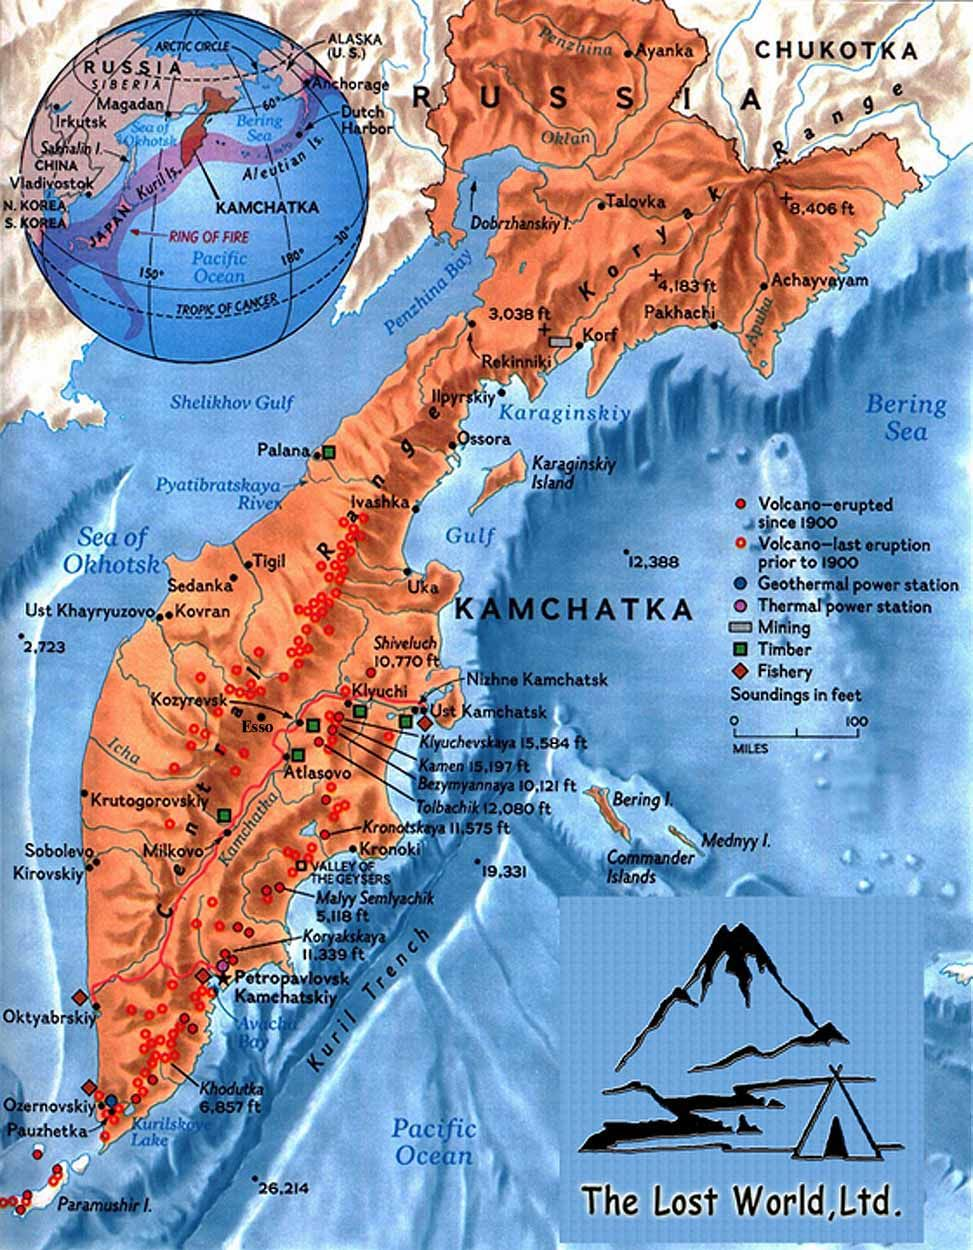 kamchatka russia russian 134kb in english and russian 99kb